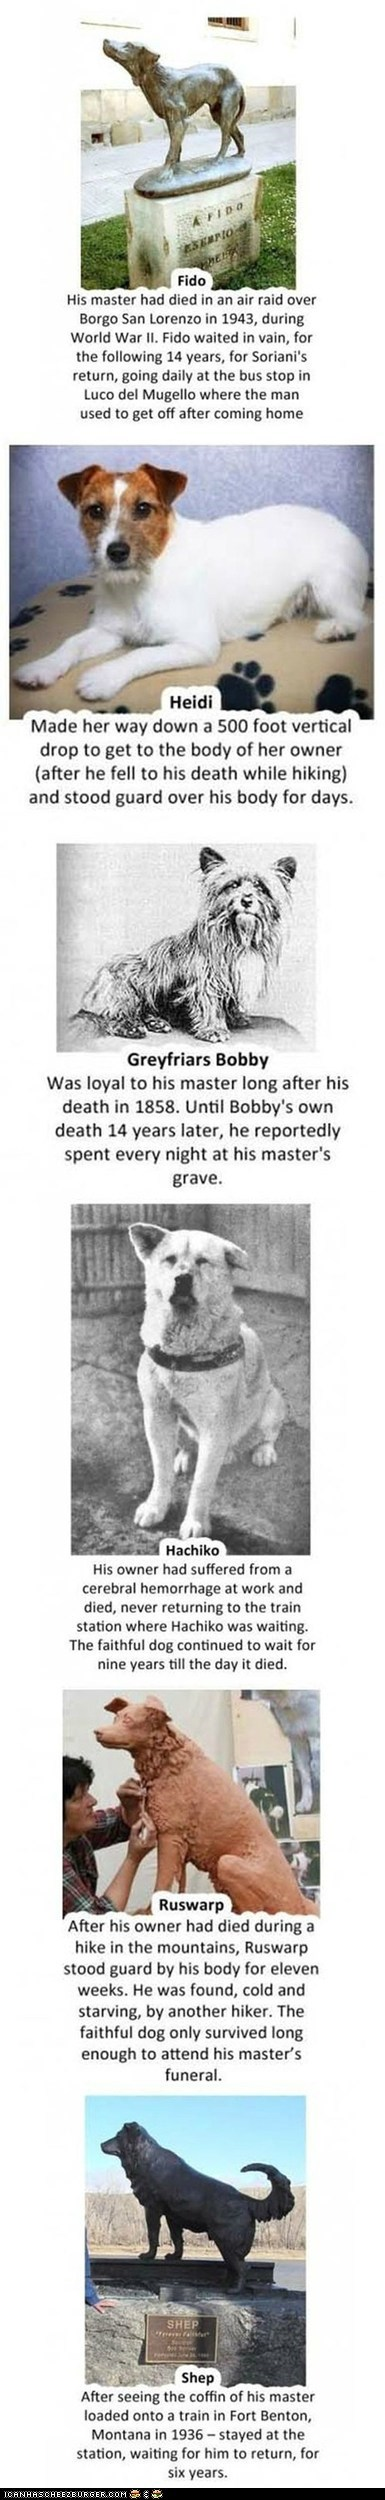 Death dogs inspiring loyal loyalty mans-best-friend Sad sweet